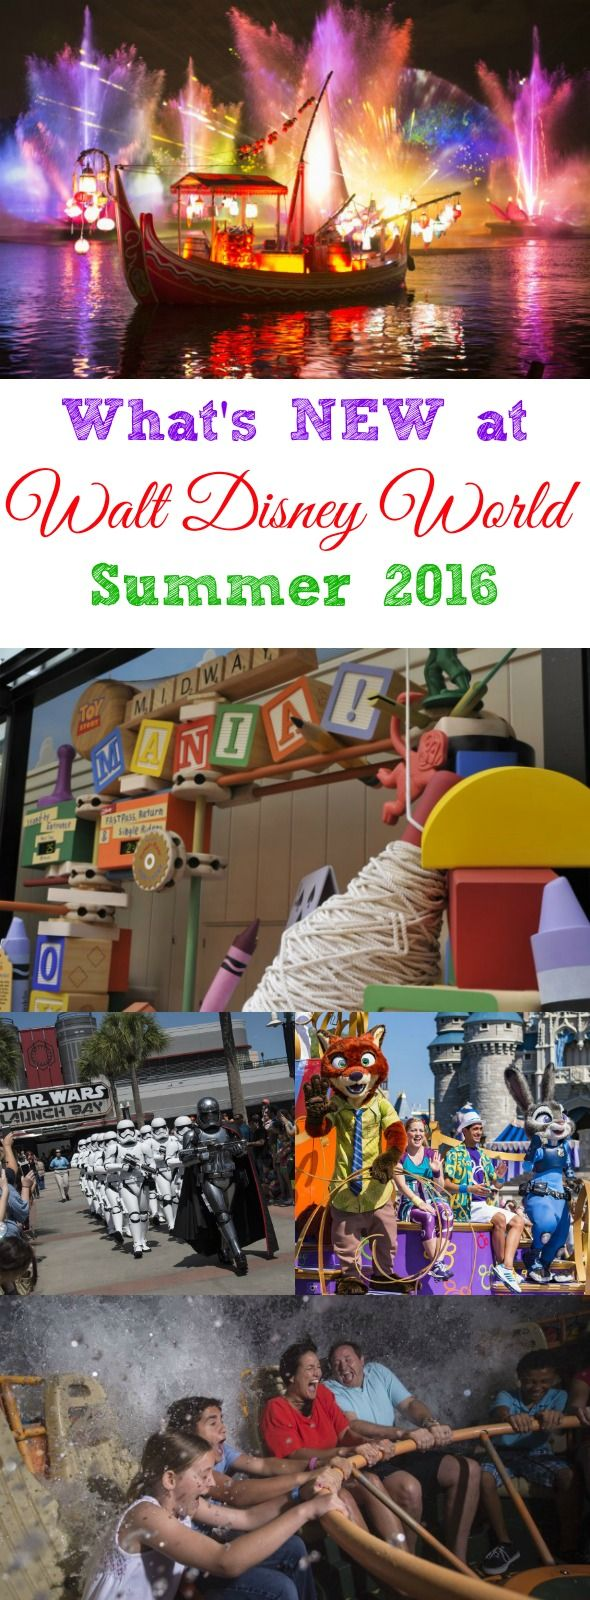 Exciting News for Walt Disney World Summer 2016